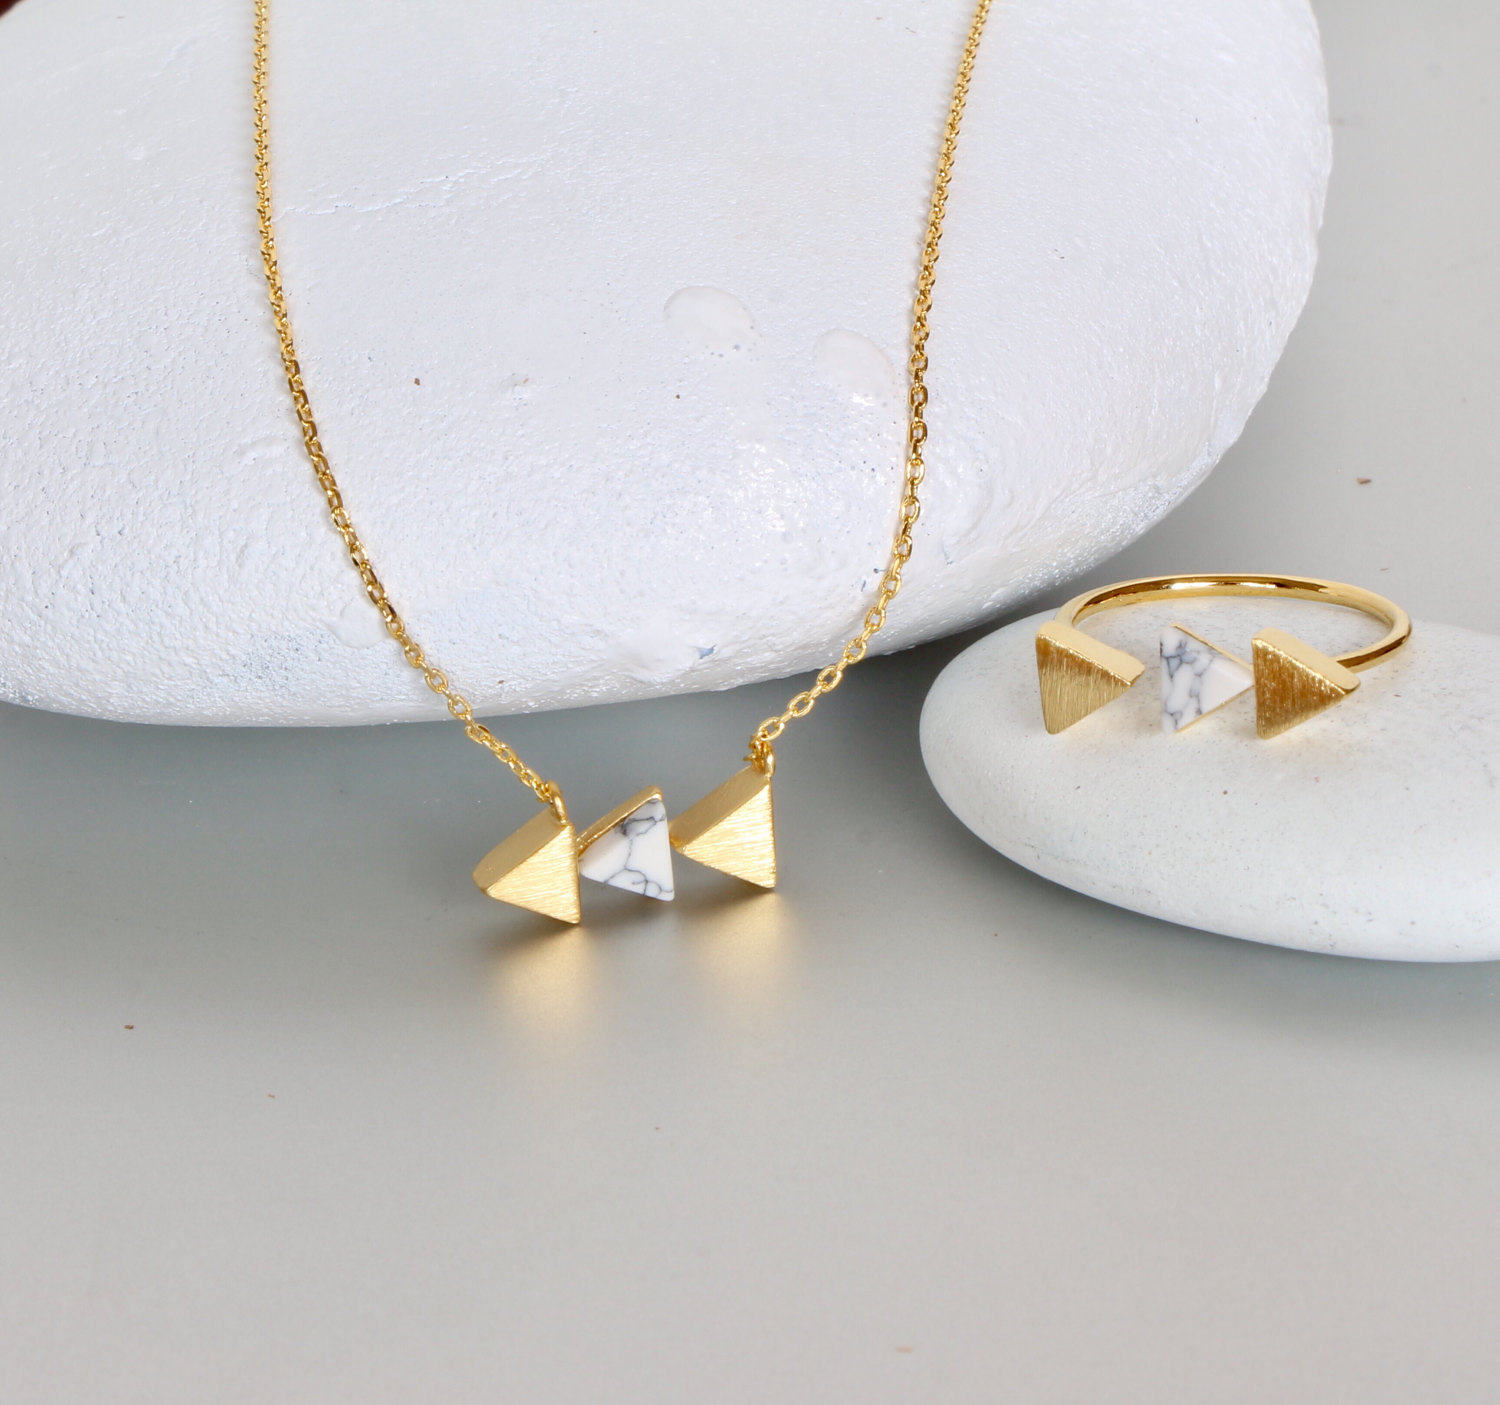 necklace contemporary market jewellery chisel fine golden etsy translucent modern jewelry il inlay work